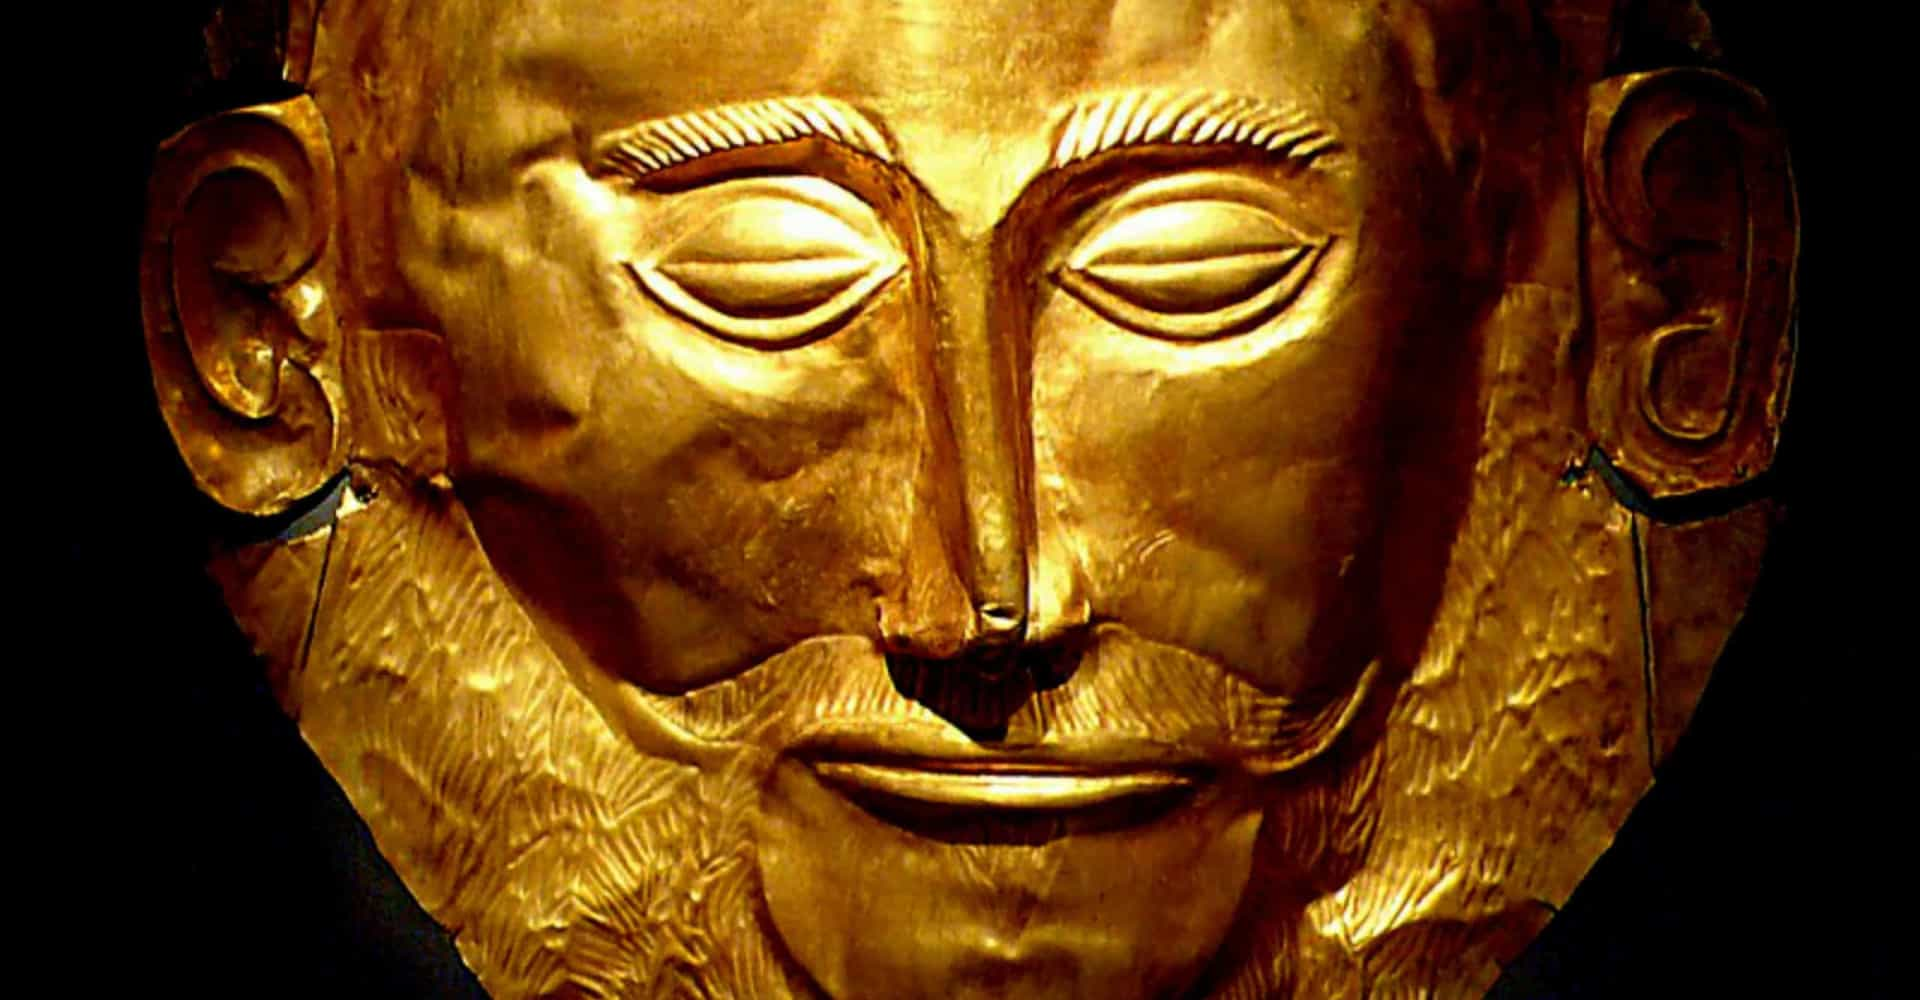 The world's most incredible historic gold artifacts